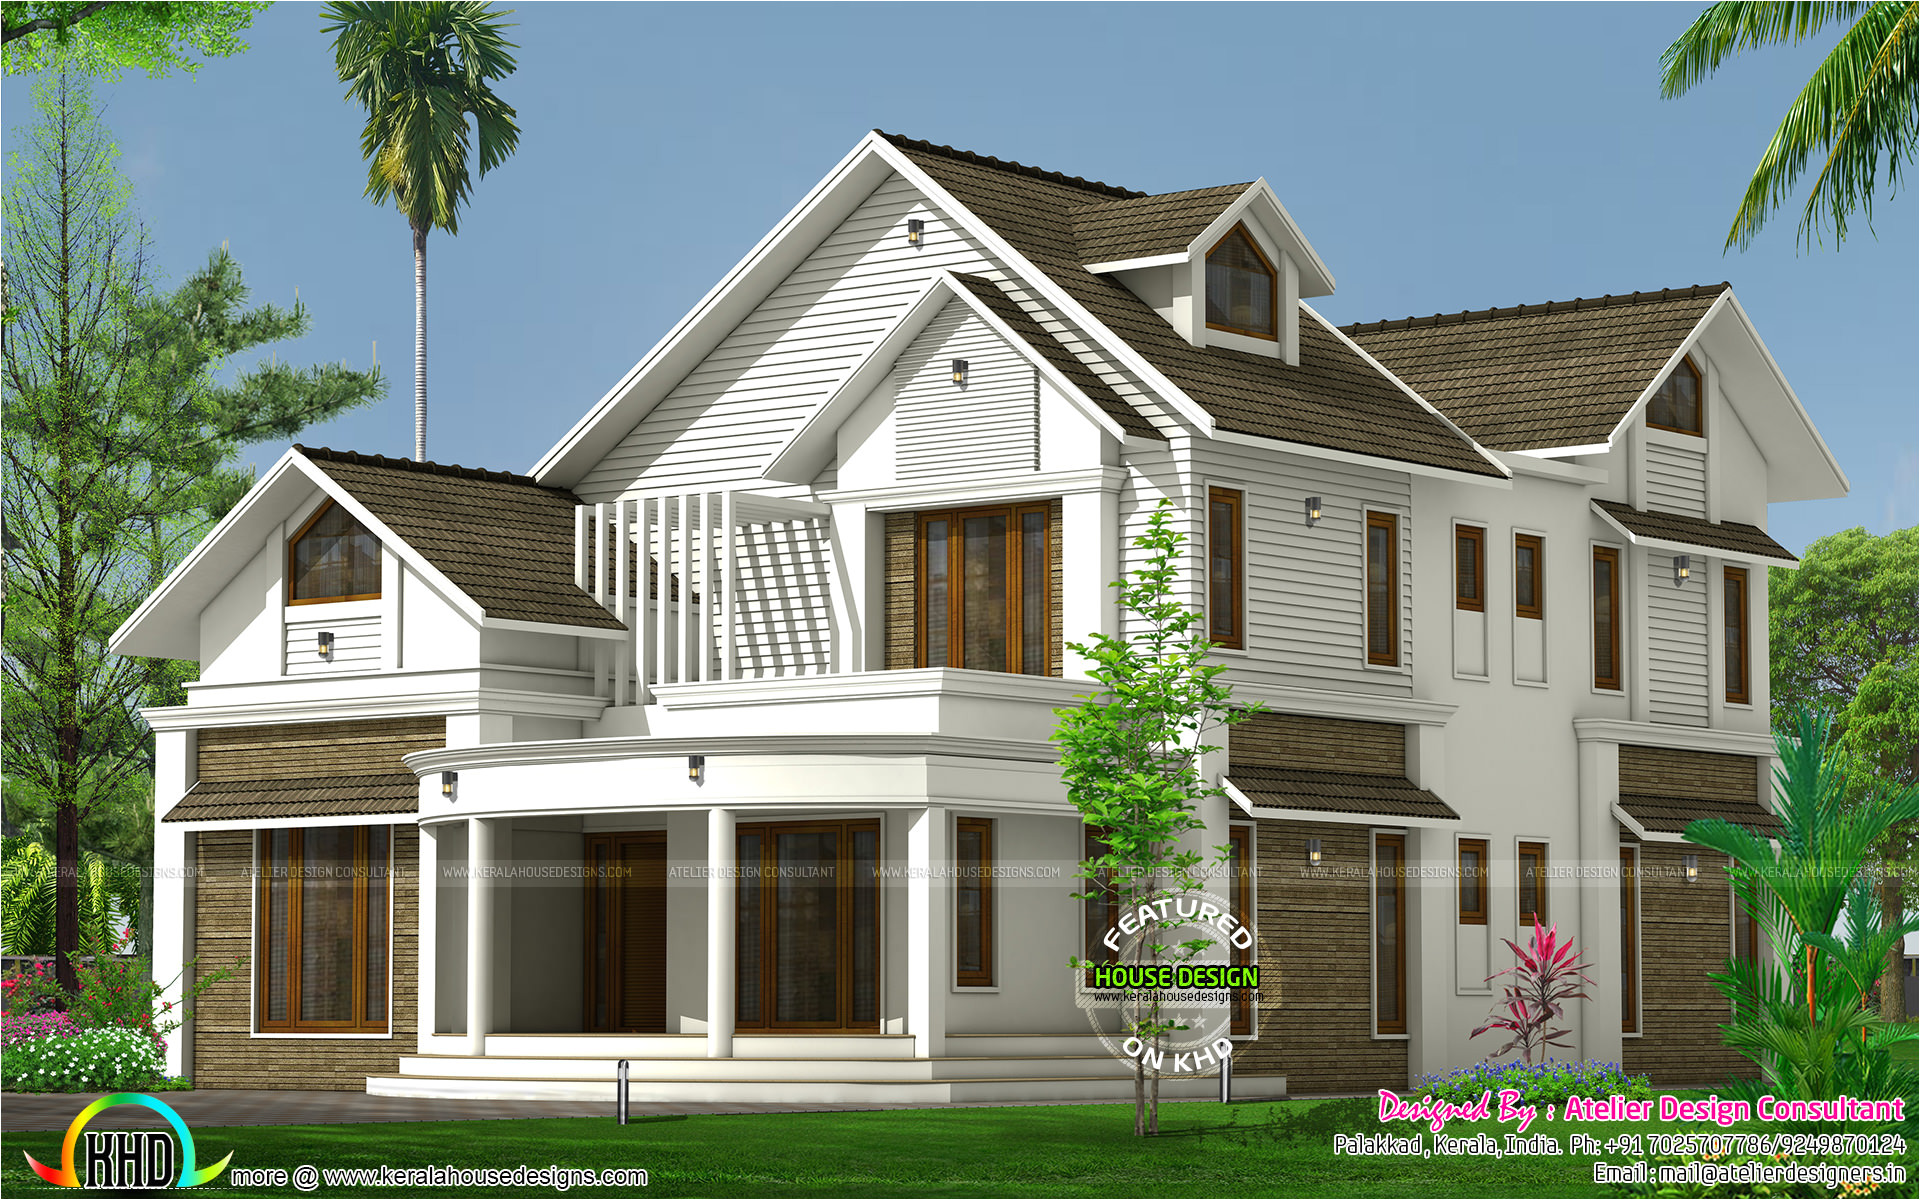 Home Plan and Design January 2017 Kerala Home Design and Floor Plans